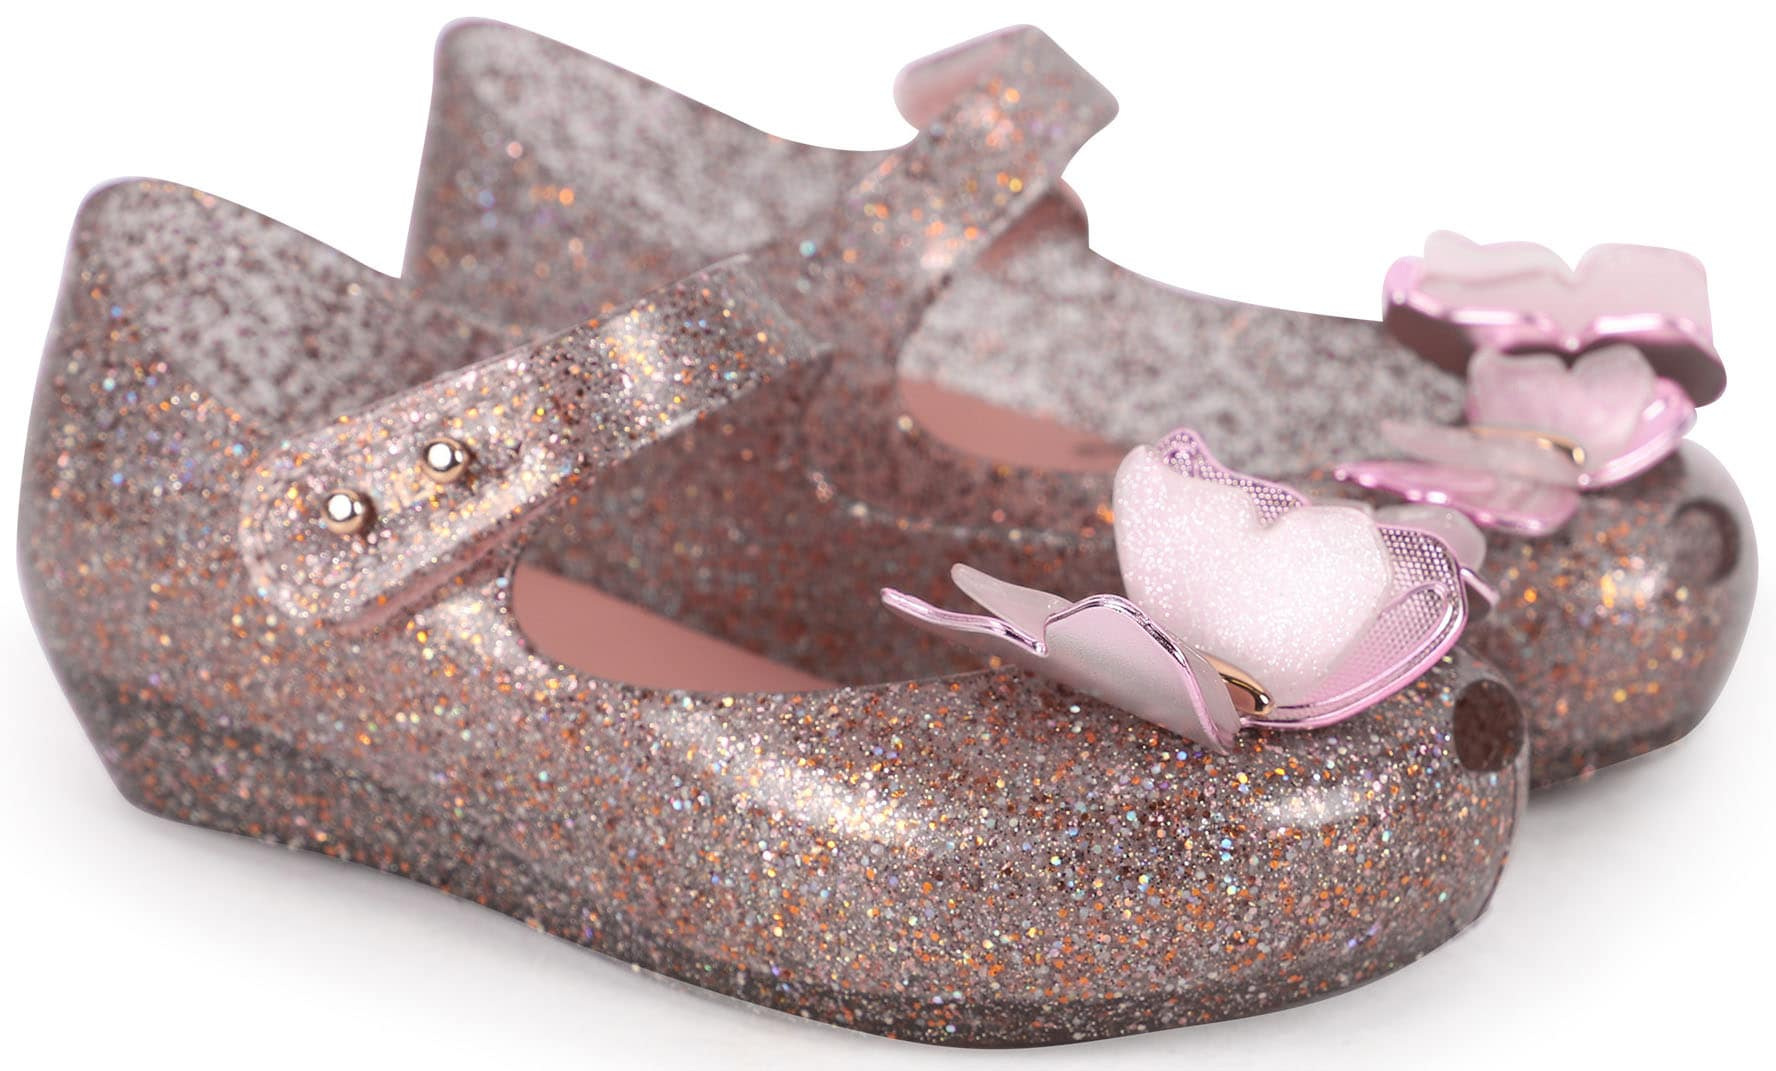 Give your little girl's outfit a touch of whimsical flair with these glittery pink butterfly jelly flats from Melissa